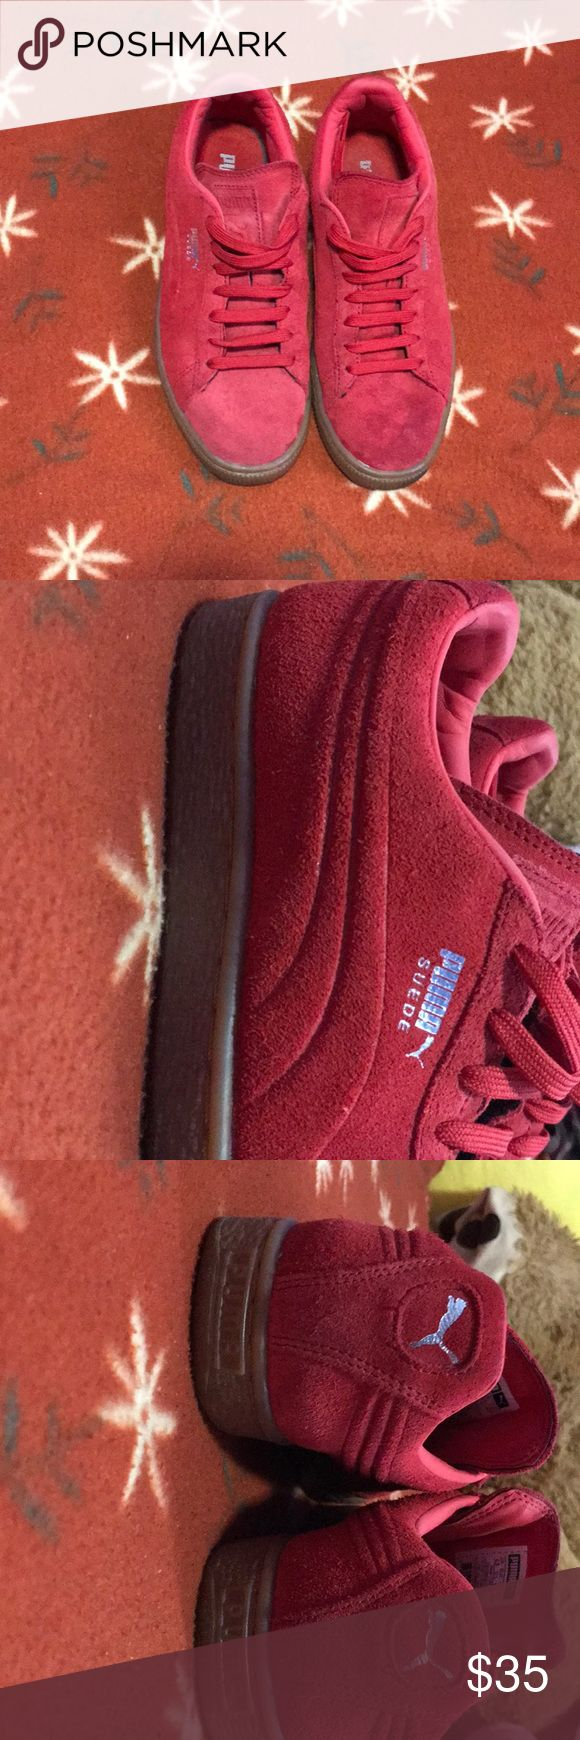 PUMA Red Suede shoes Very comfy, easy to pair up with any outfit and price reflects condition Puma Shoes Sneakers